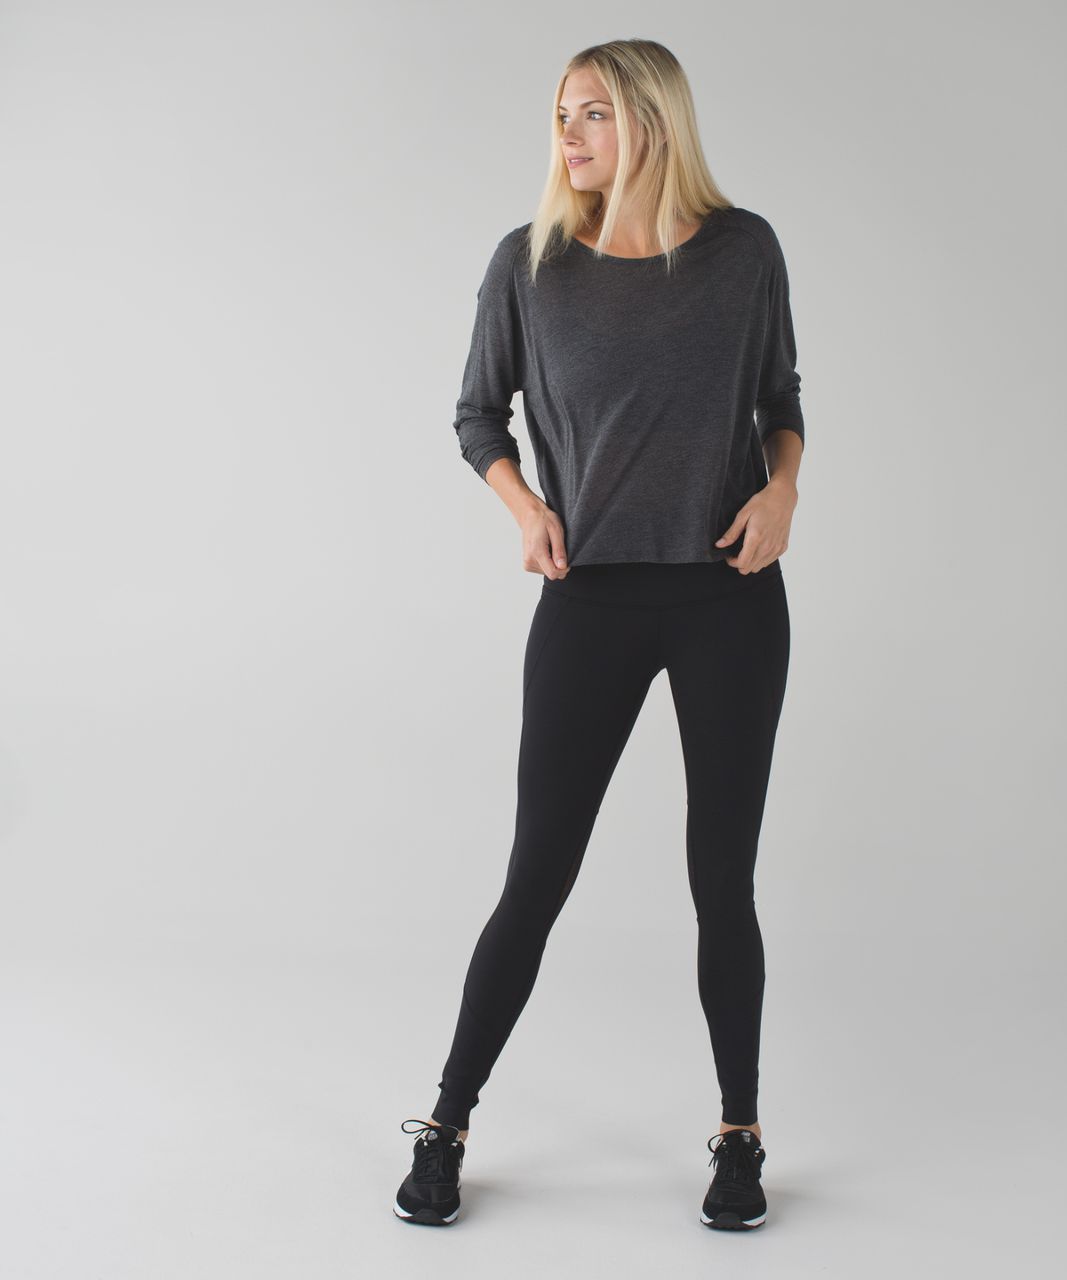 Lululemon Barre Star Pant *Full-On Luon - Black